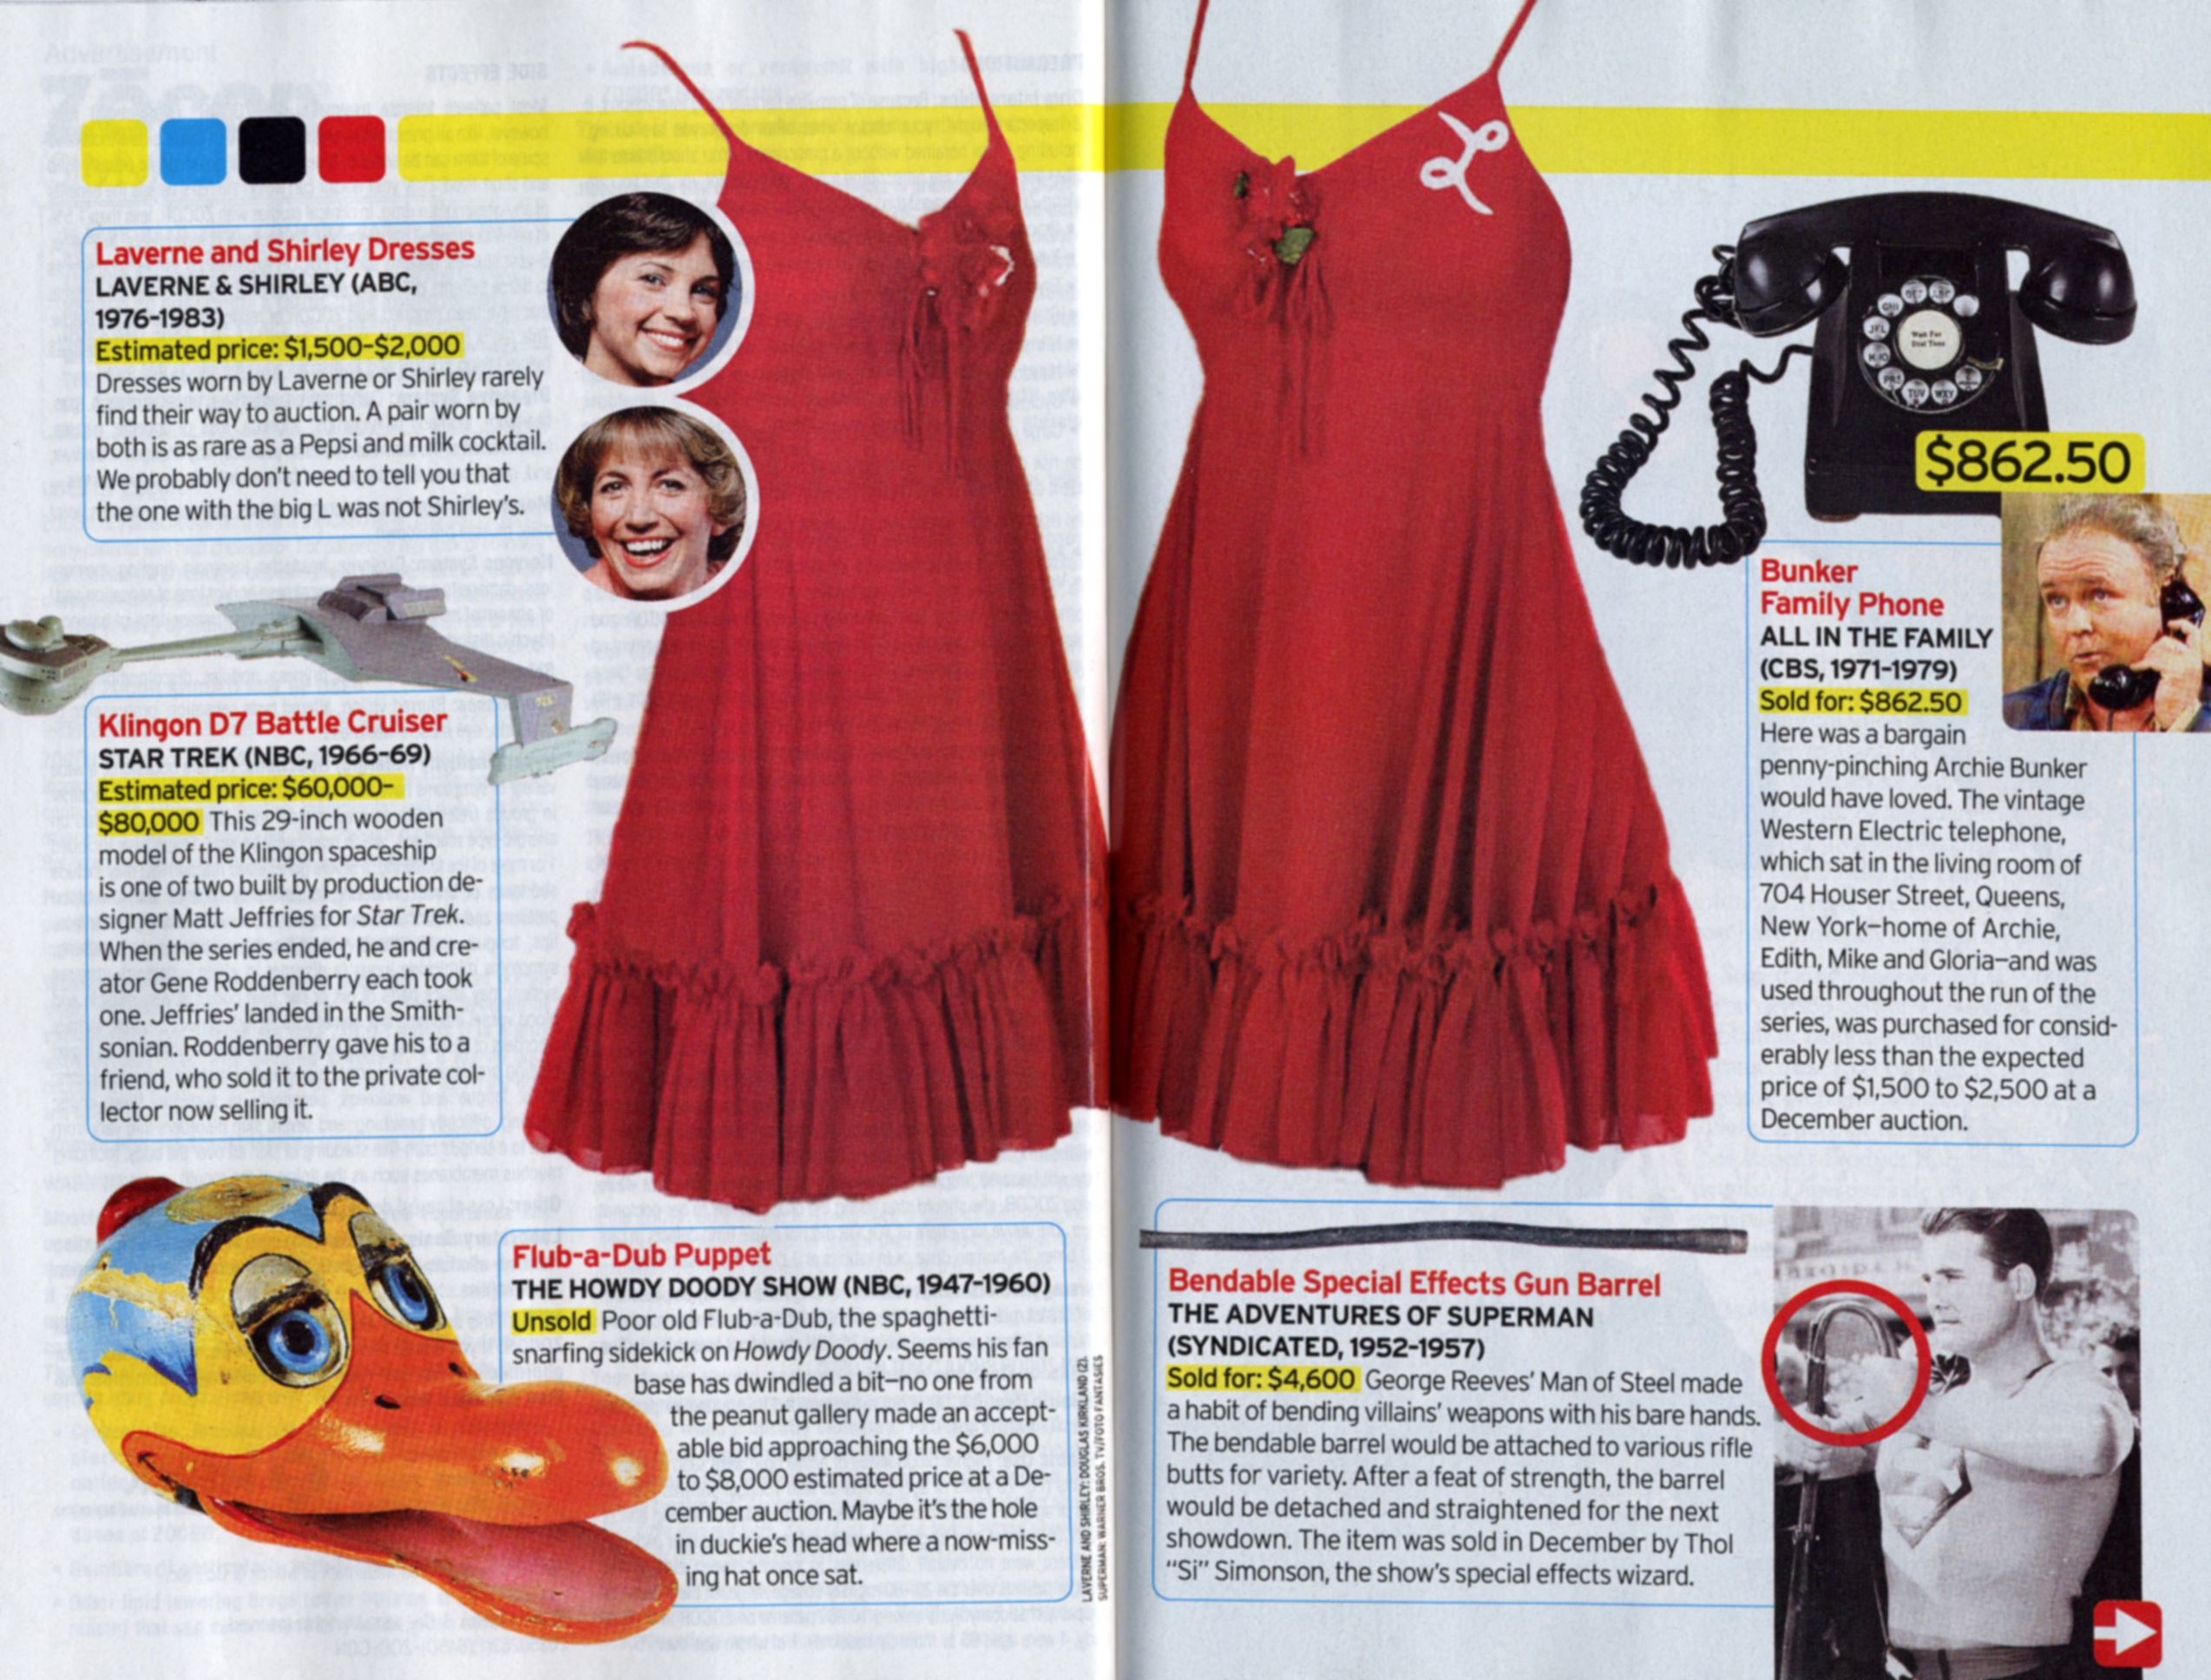 TV Guide Article with red Laverne and Shirley dresses